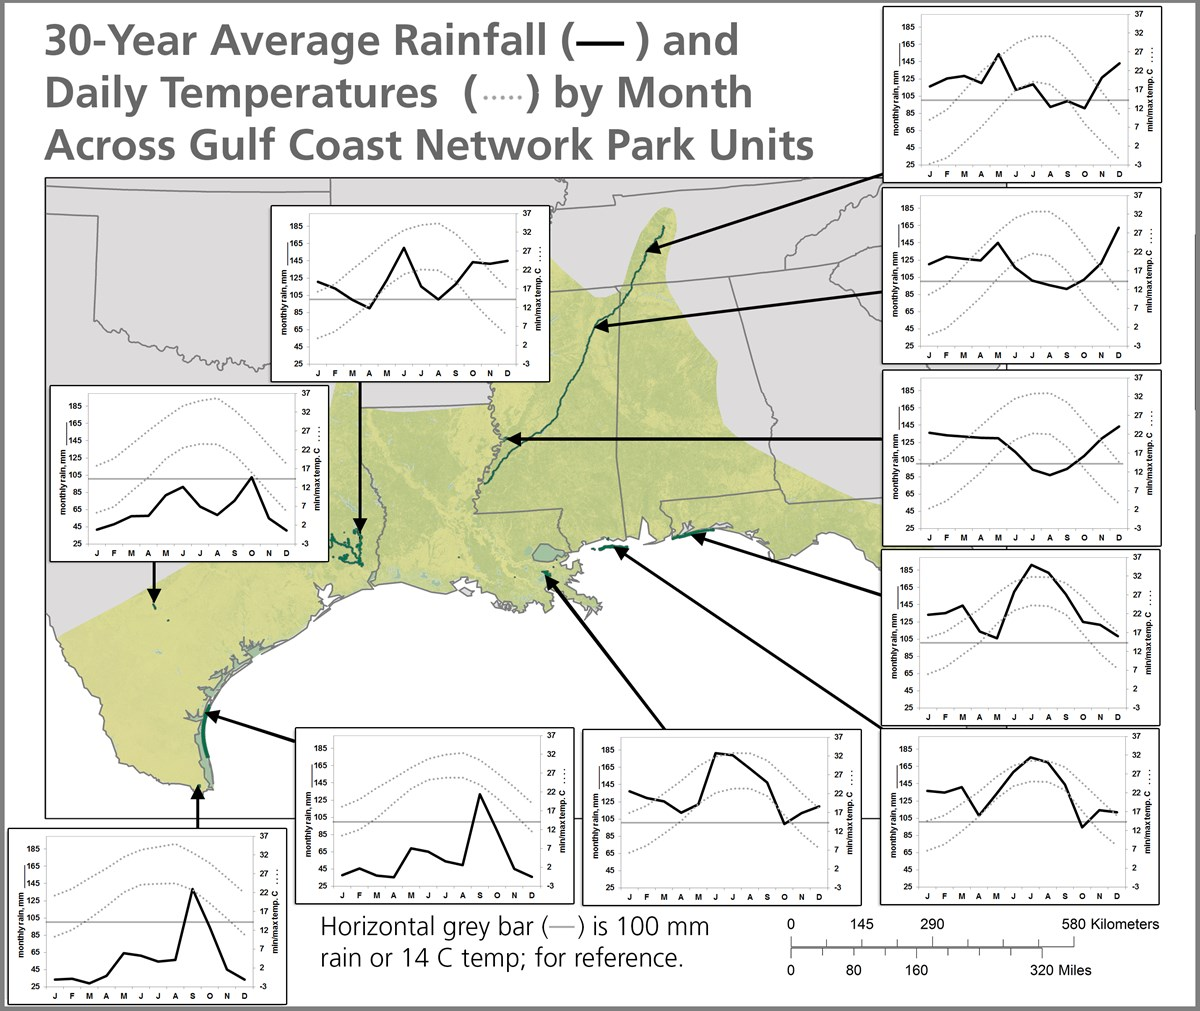 Annual climate patterns for GULN park units. The Gulf Coast Network is shaded yellow, and the park units are dark green.